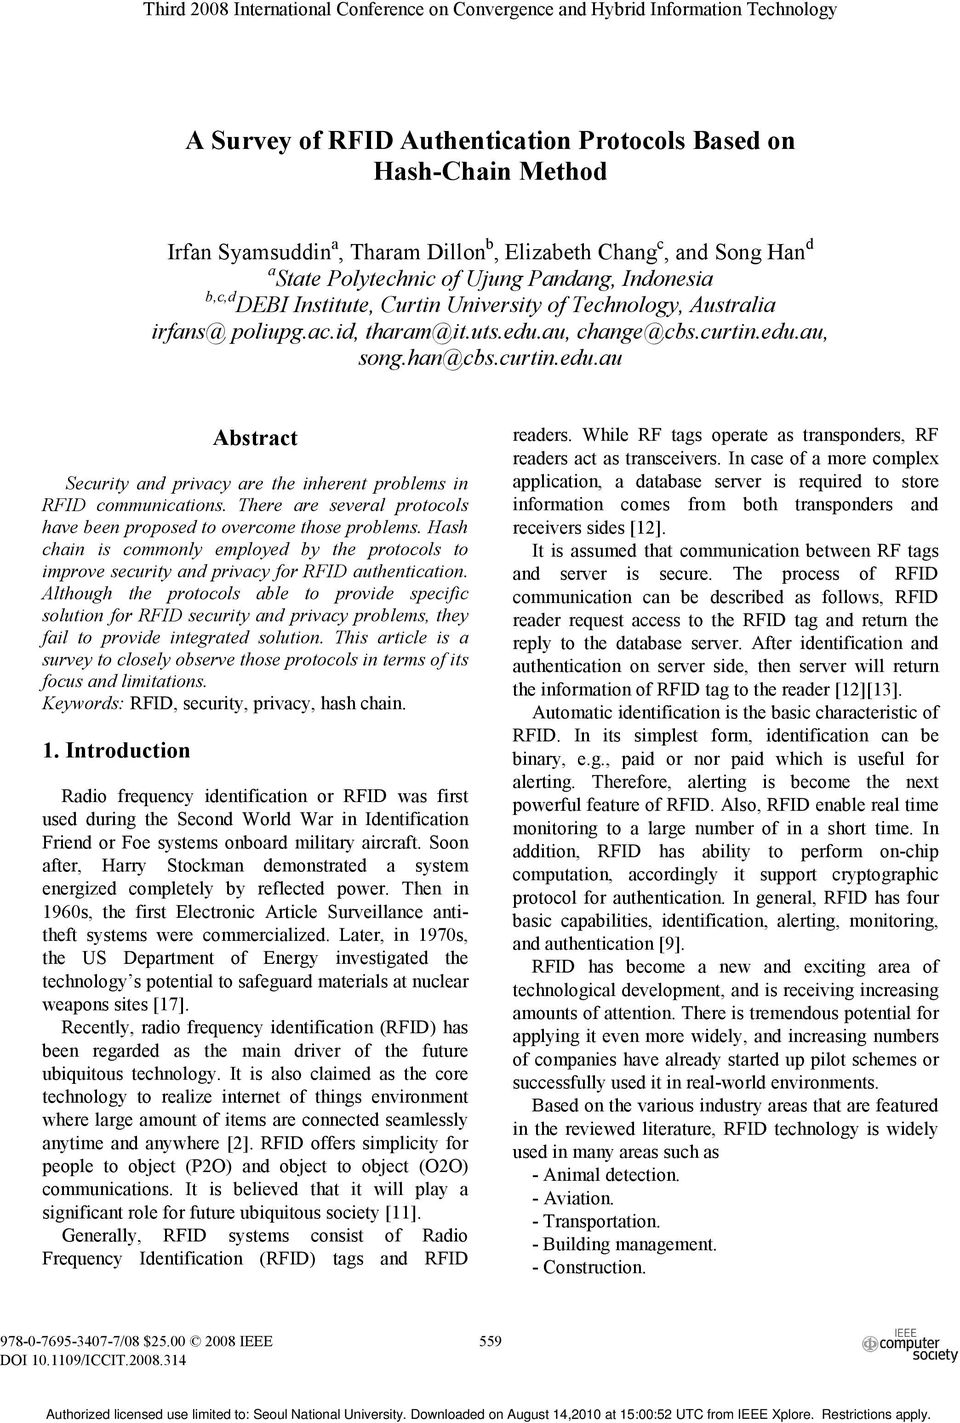 au, change@cbs.curtin.edu.au, song.han@cbs.curtin.edu.au Abstract Security and privacy are the inherent problems in RFID communications.